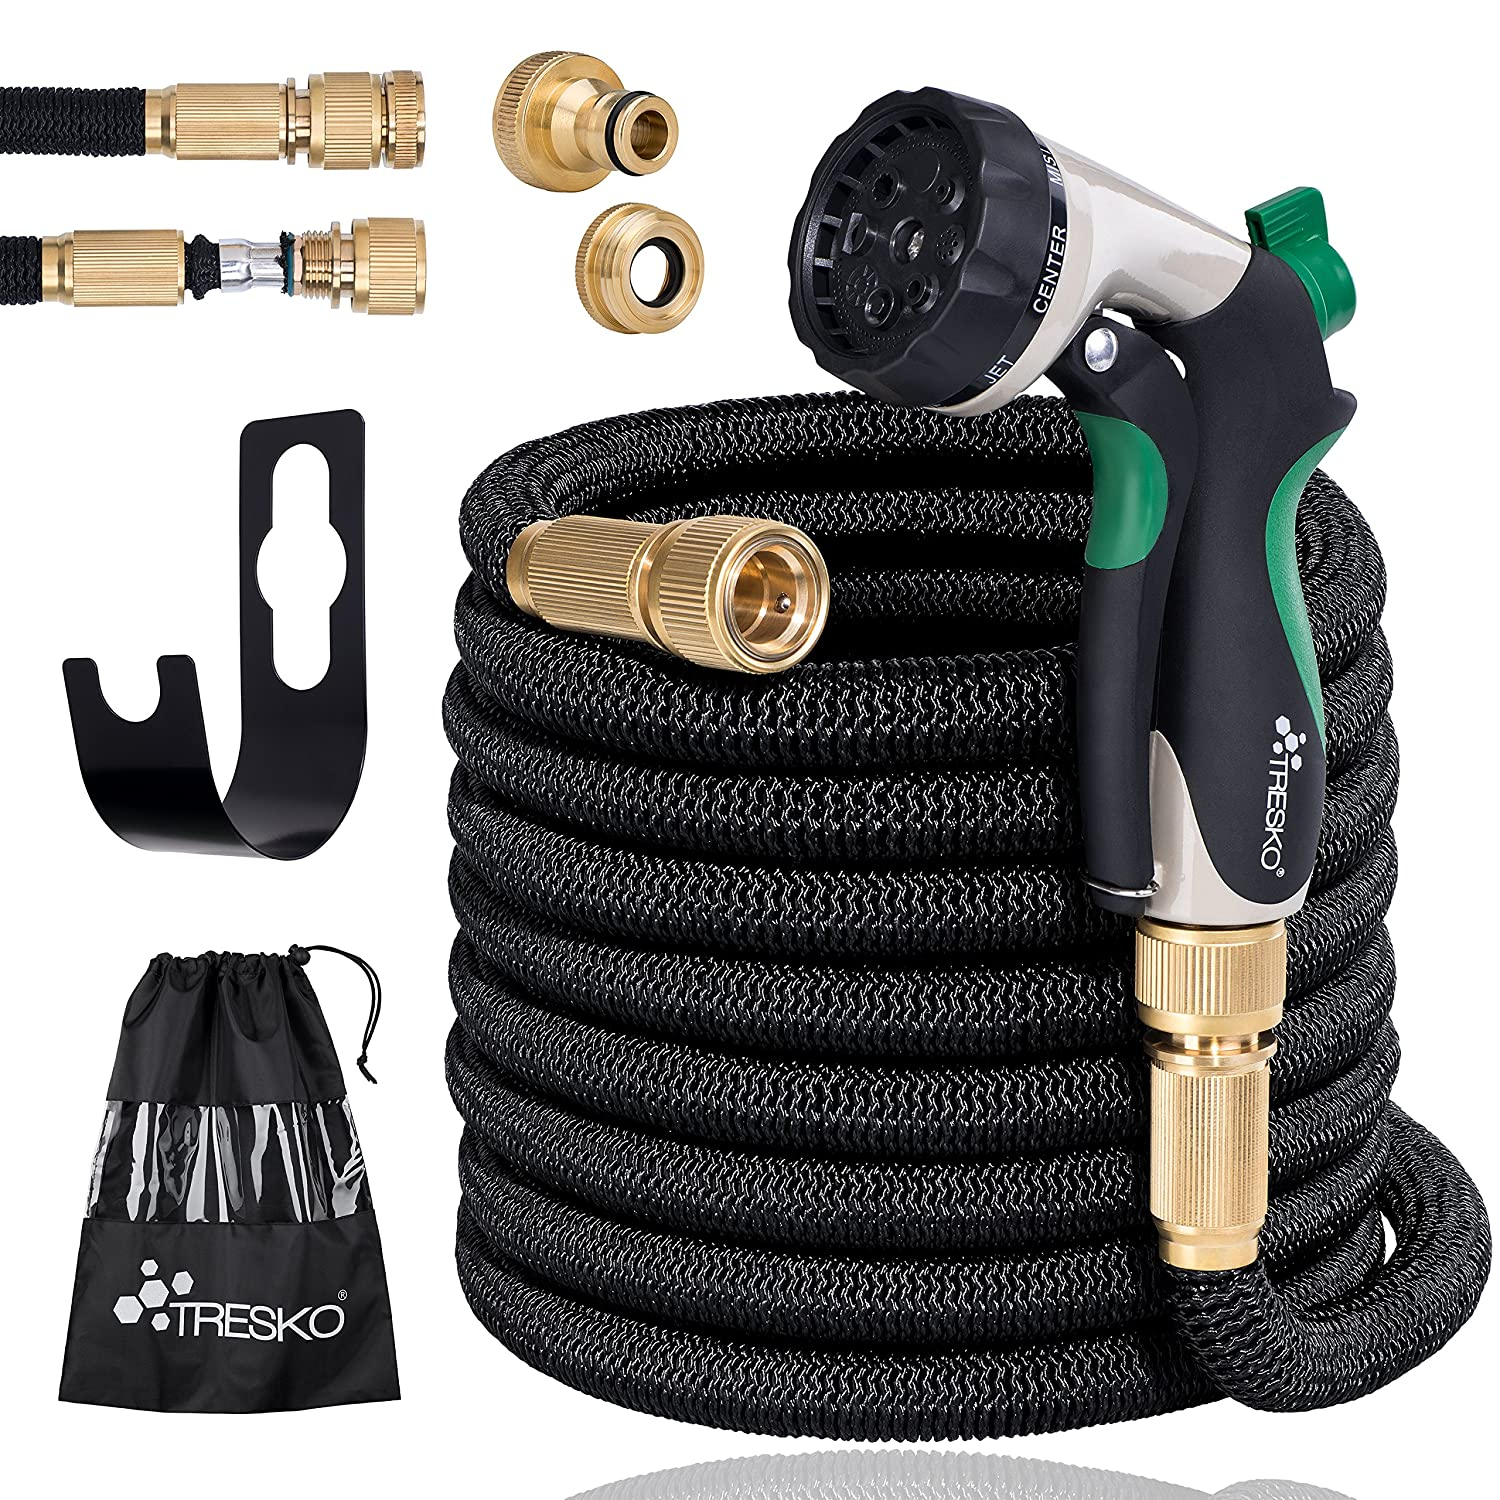 Expandable Garden Water Hose Pipe- 8-Pattern Spray Gun Anti-leakage with Brass Fittings, Triple Latex Core & Hose Hook/ Hanger, Magic-hose pipes by TRESKO (25FT) DWD-Company